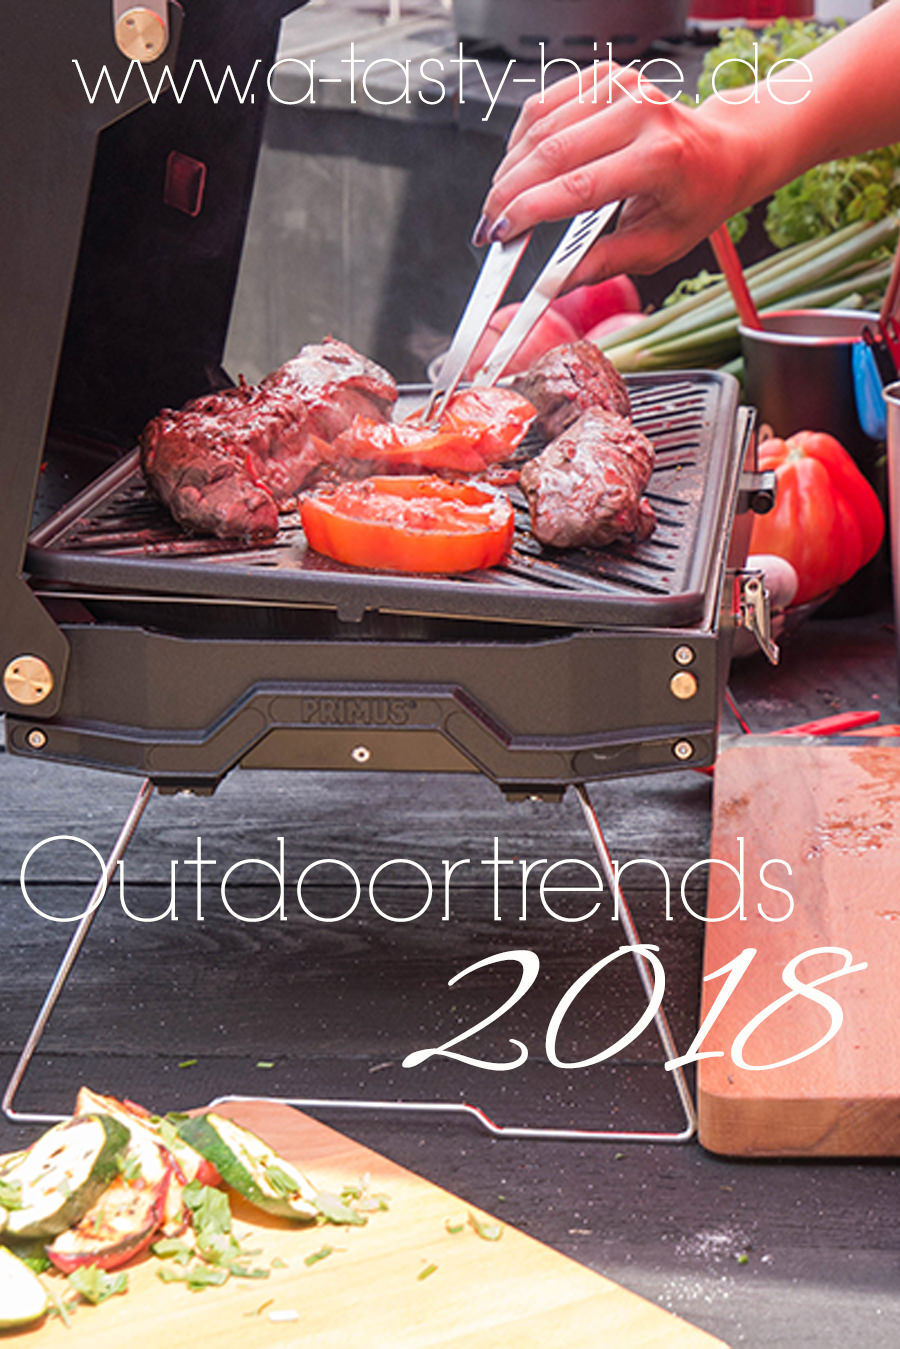 Outdoortrends 2018 Pinterest